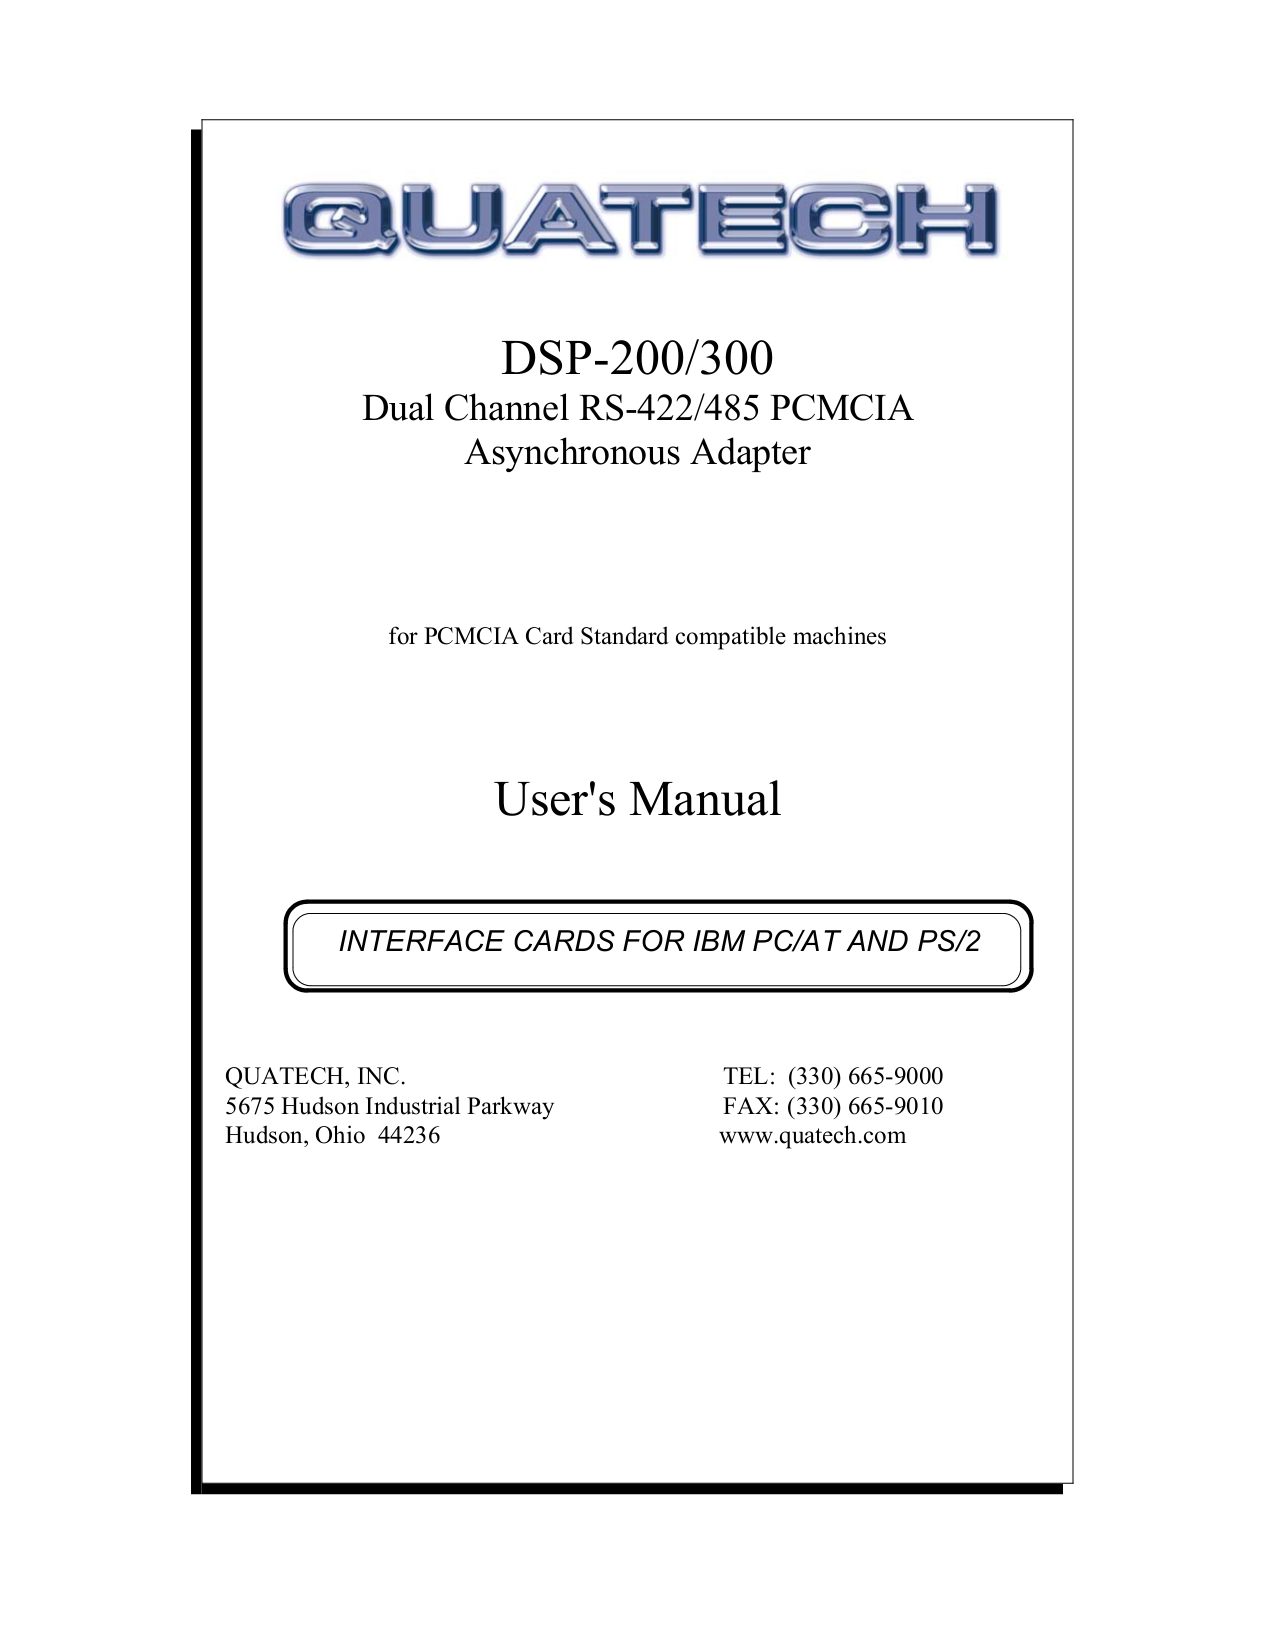 pdf for Quatech Other DSP-200 PCMCIA Cards manual